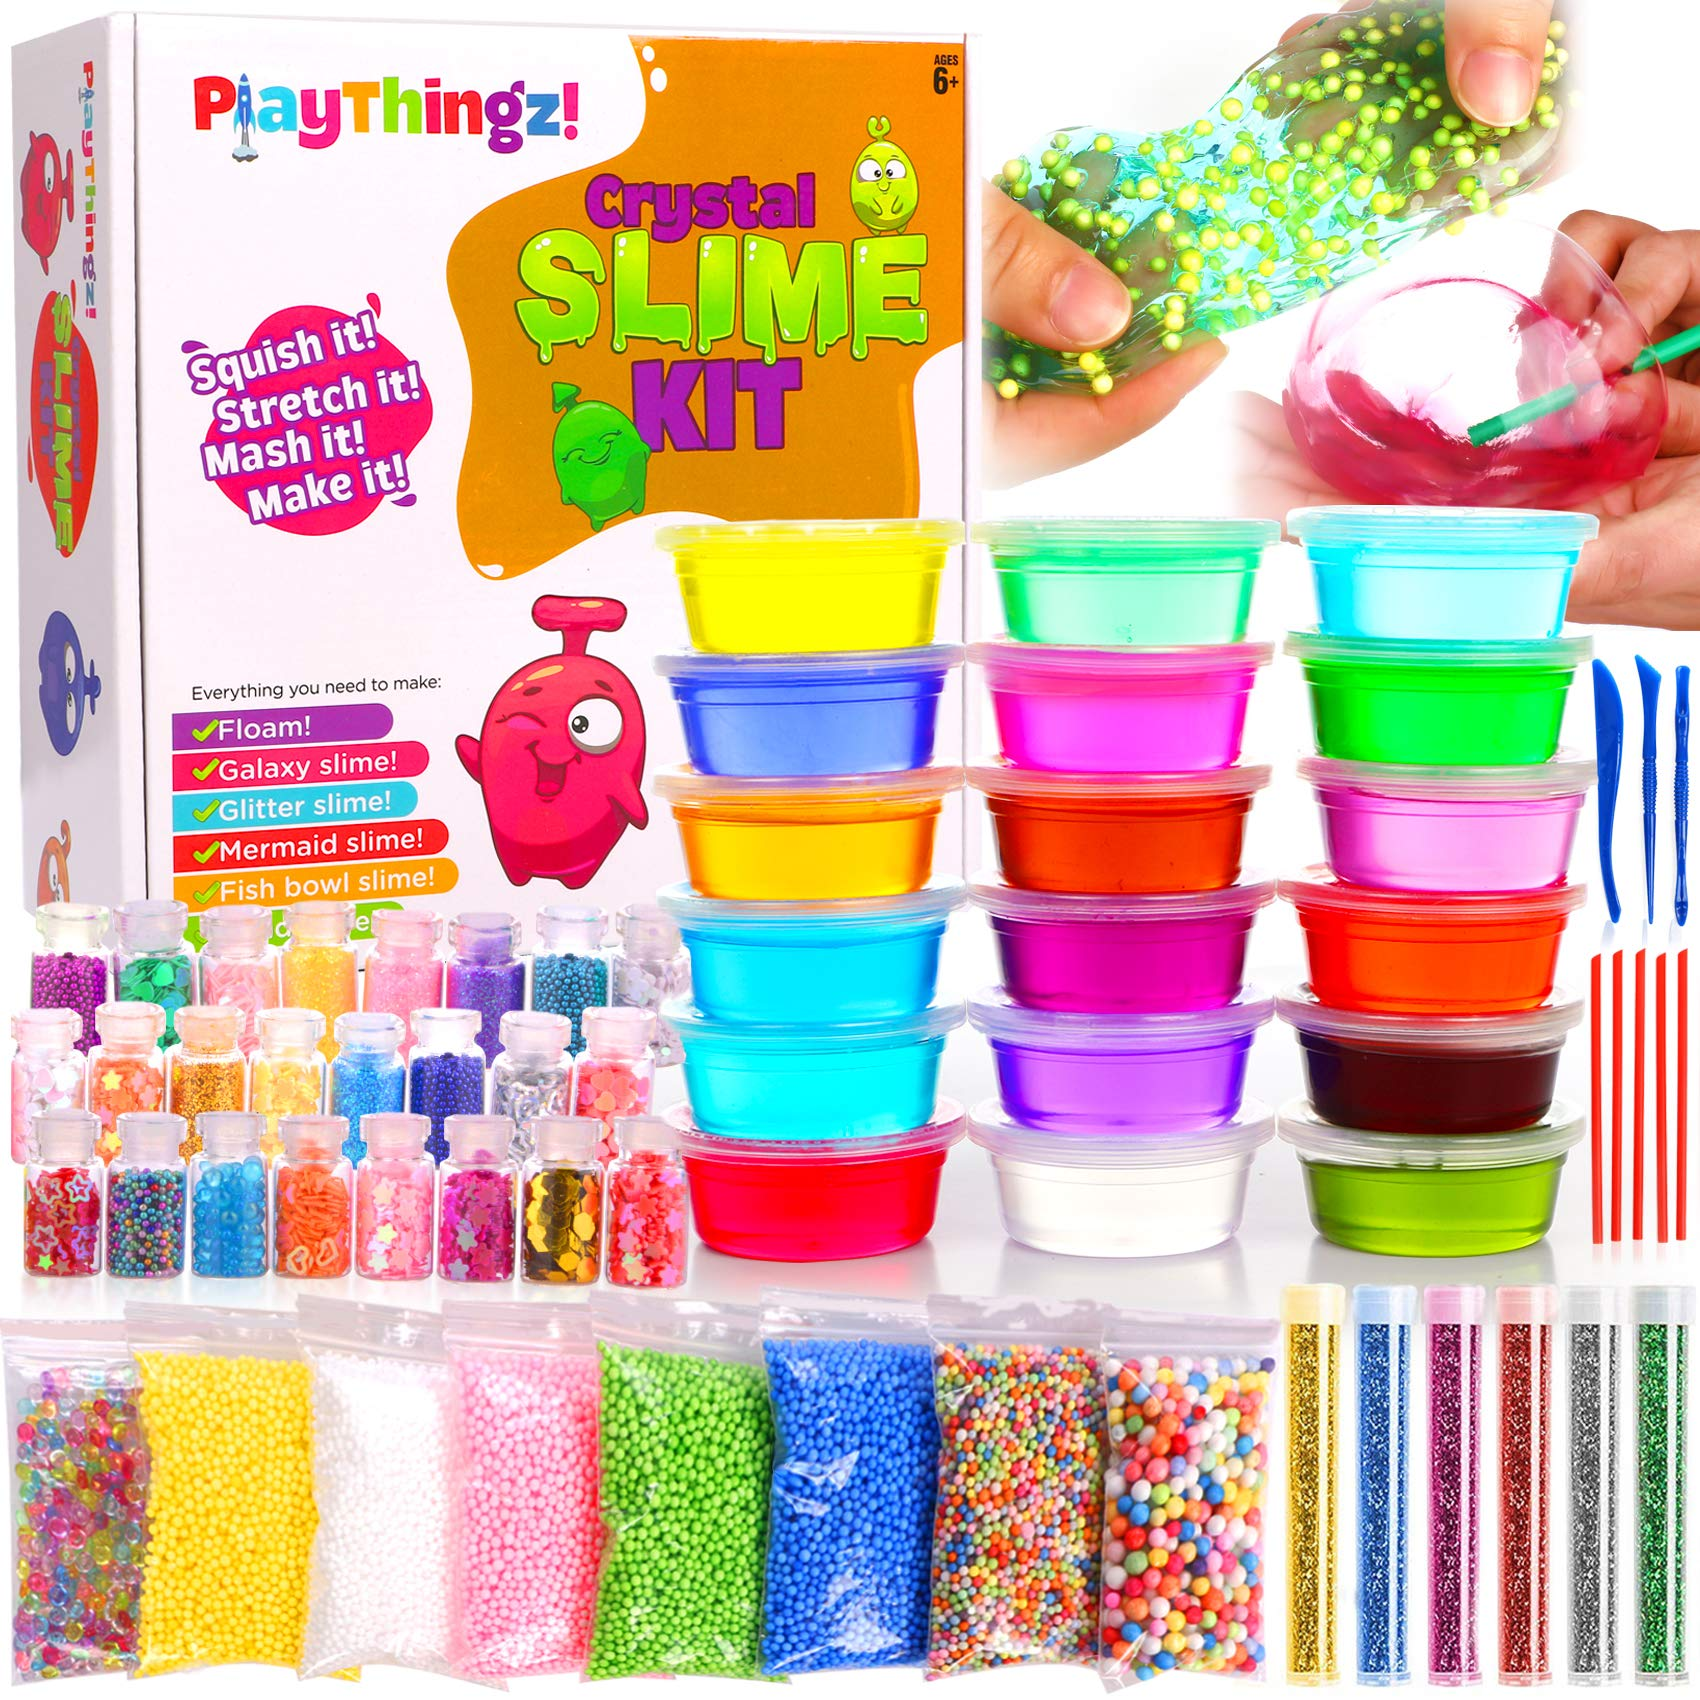 DIY Slime Kit for Girls Boys - Ultimate Slime Making Kits - Slime Supplies - 18 Slime Containers add ins Floam beads, Glitter, Galaxy, Mermaid, Fishbowl Crunchy Unicorn Clear Slime-Fun for Kids Party